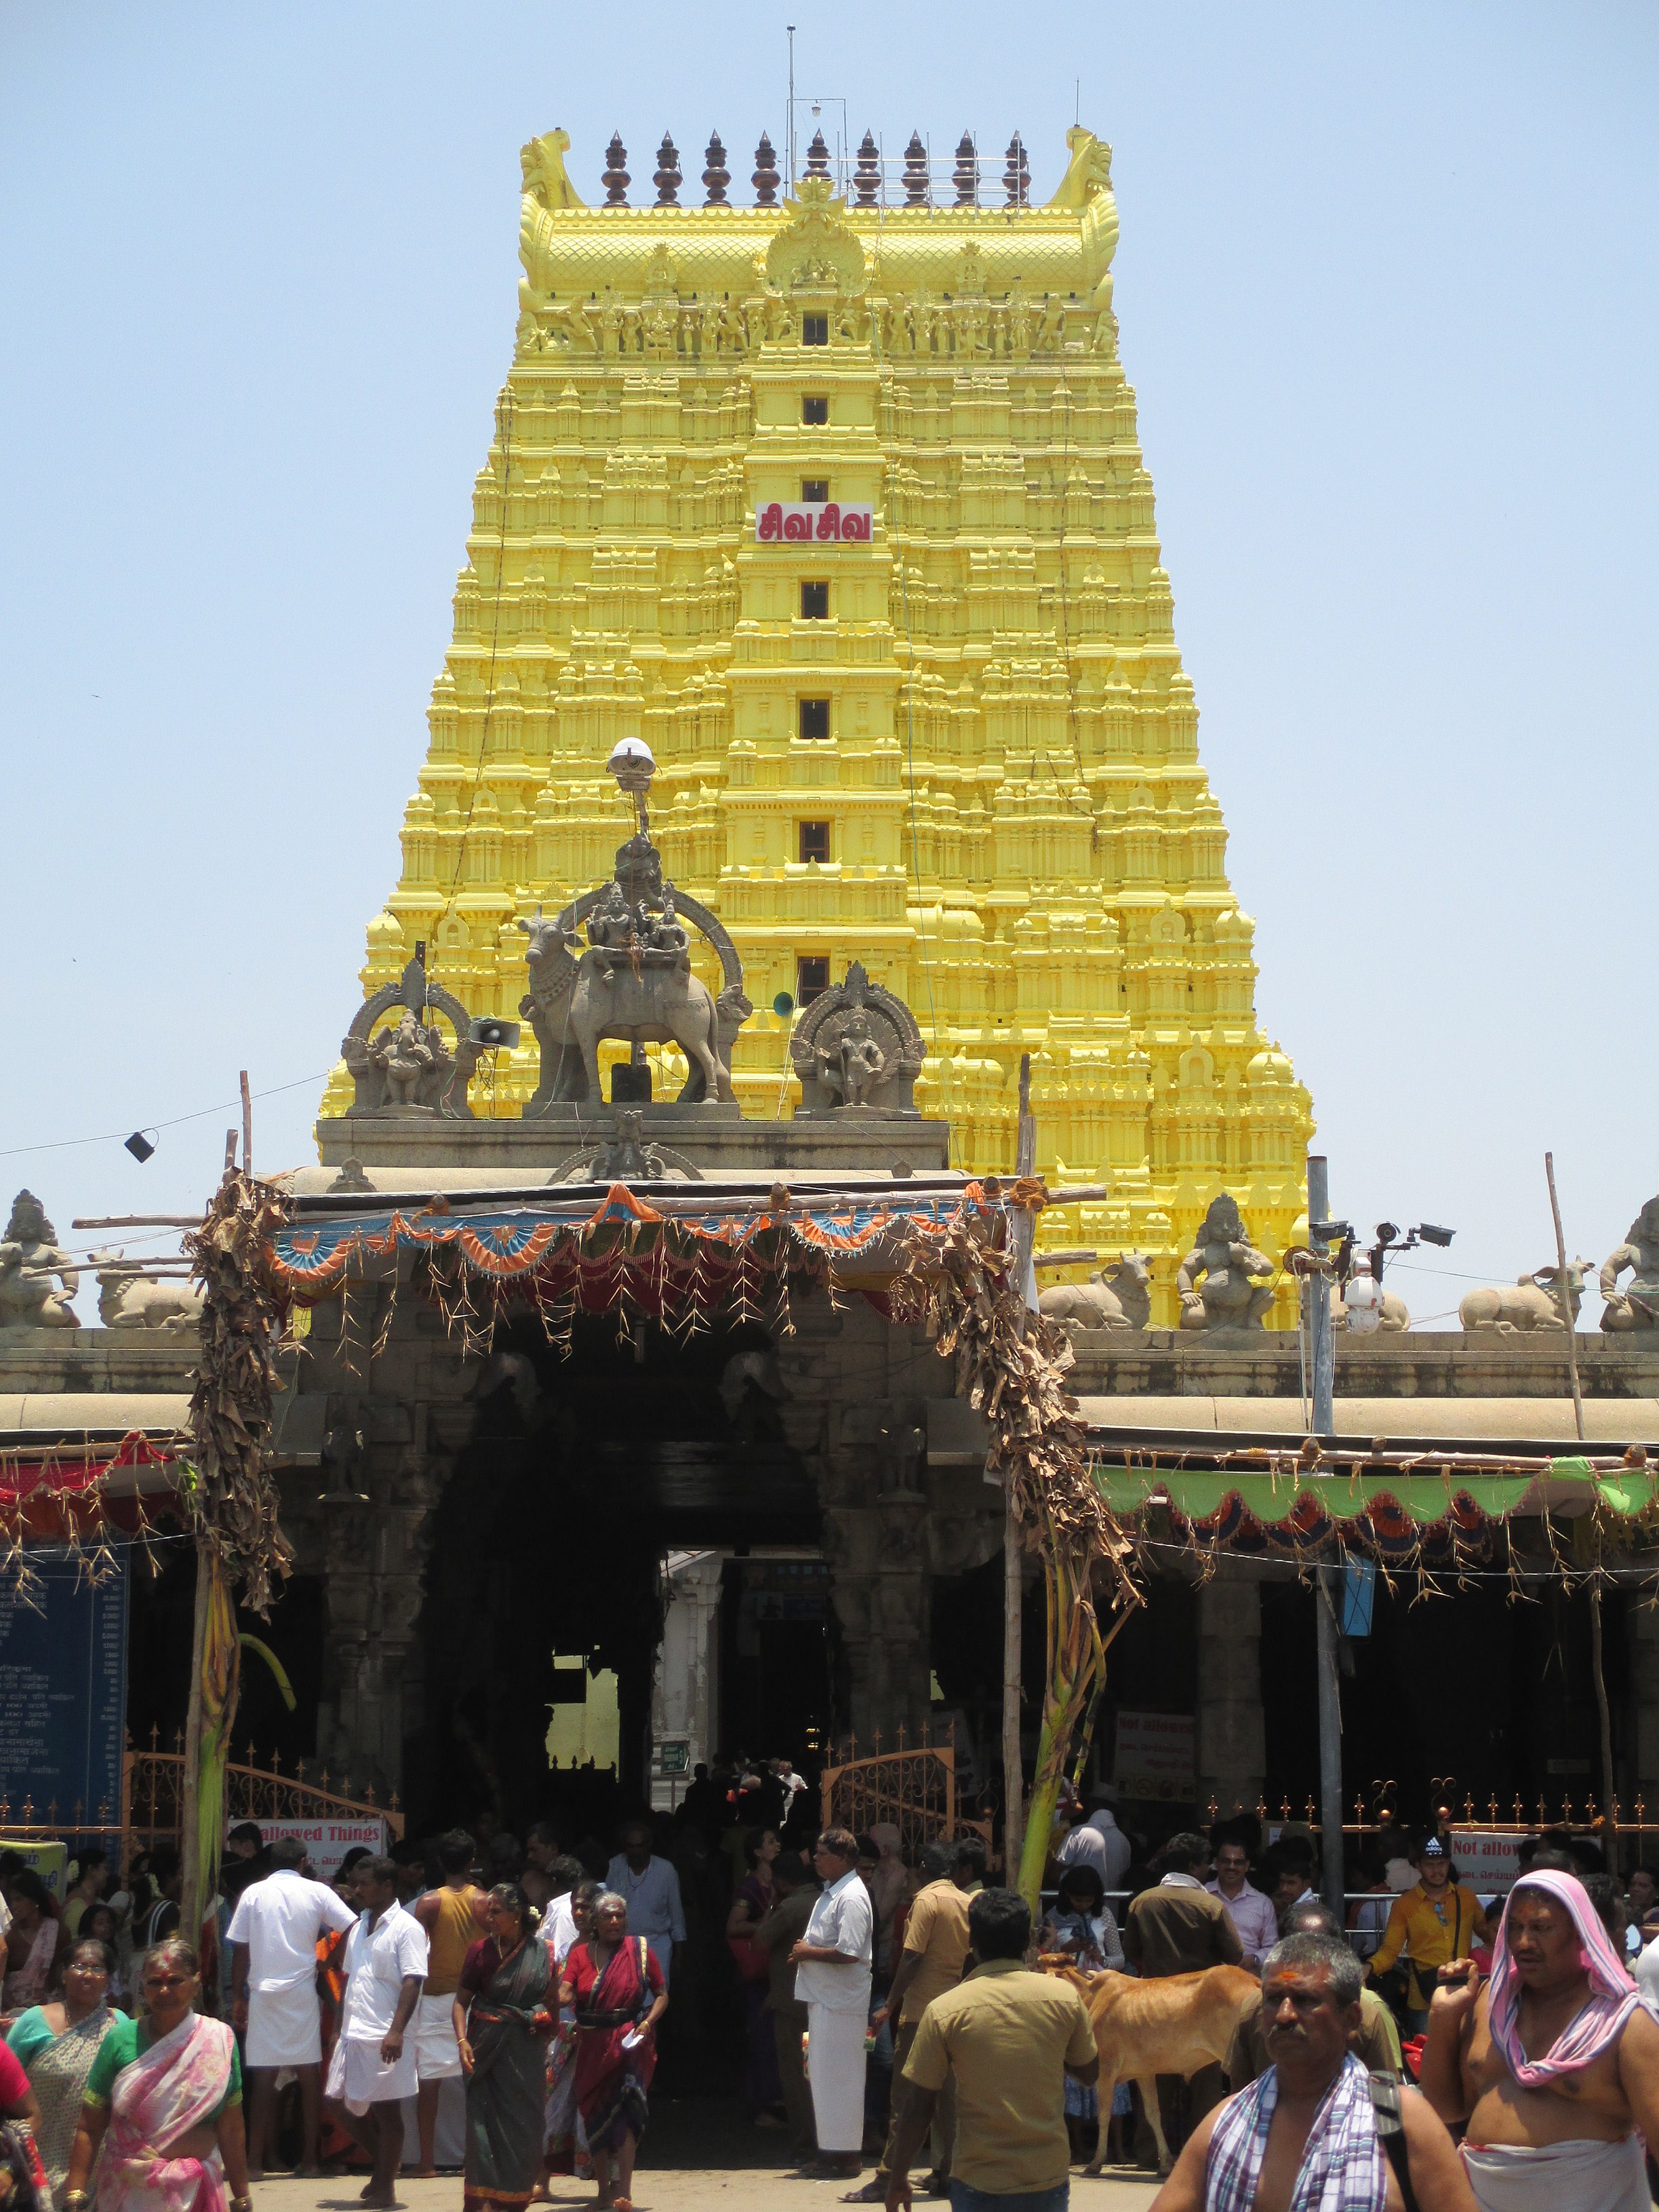 Ramanathaswamy Temple, Rameswaram - The complete information